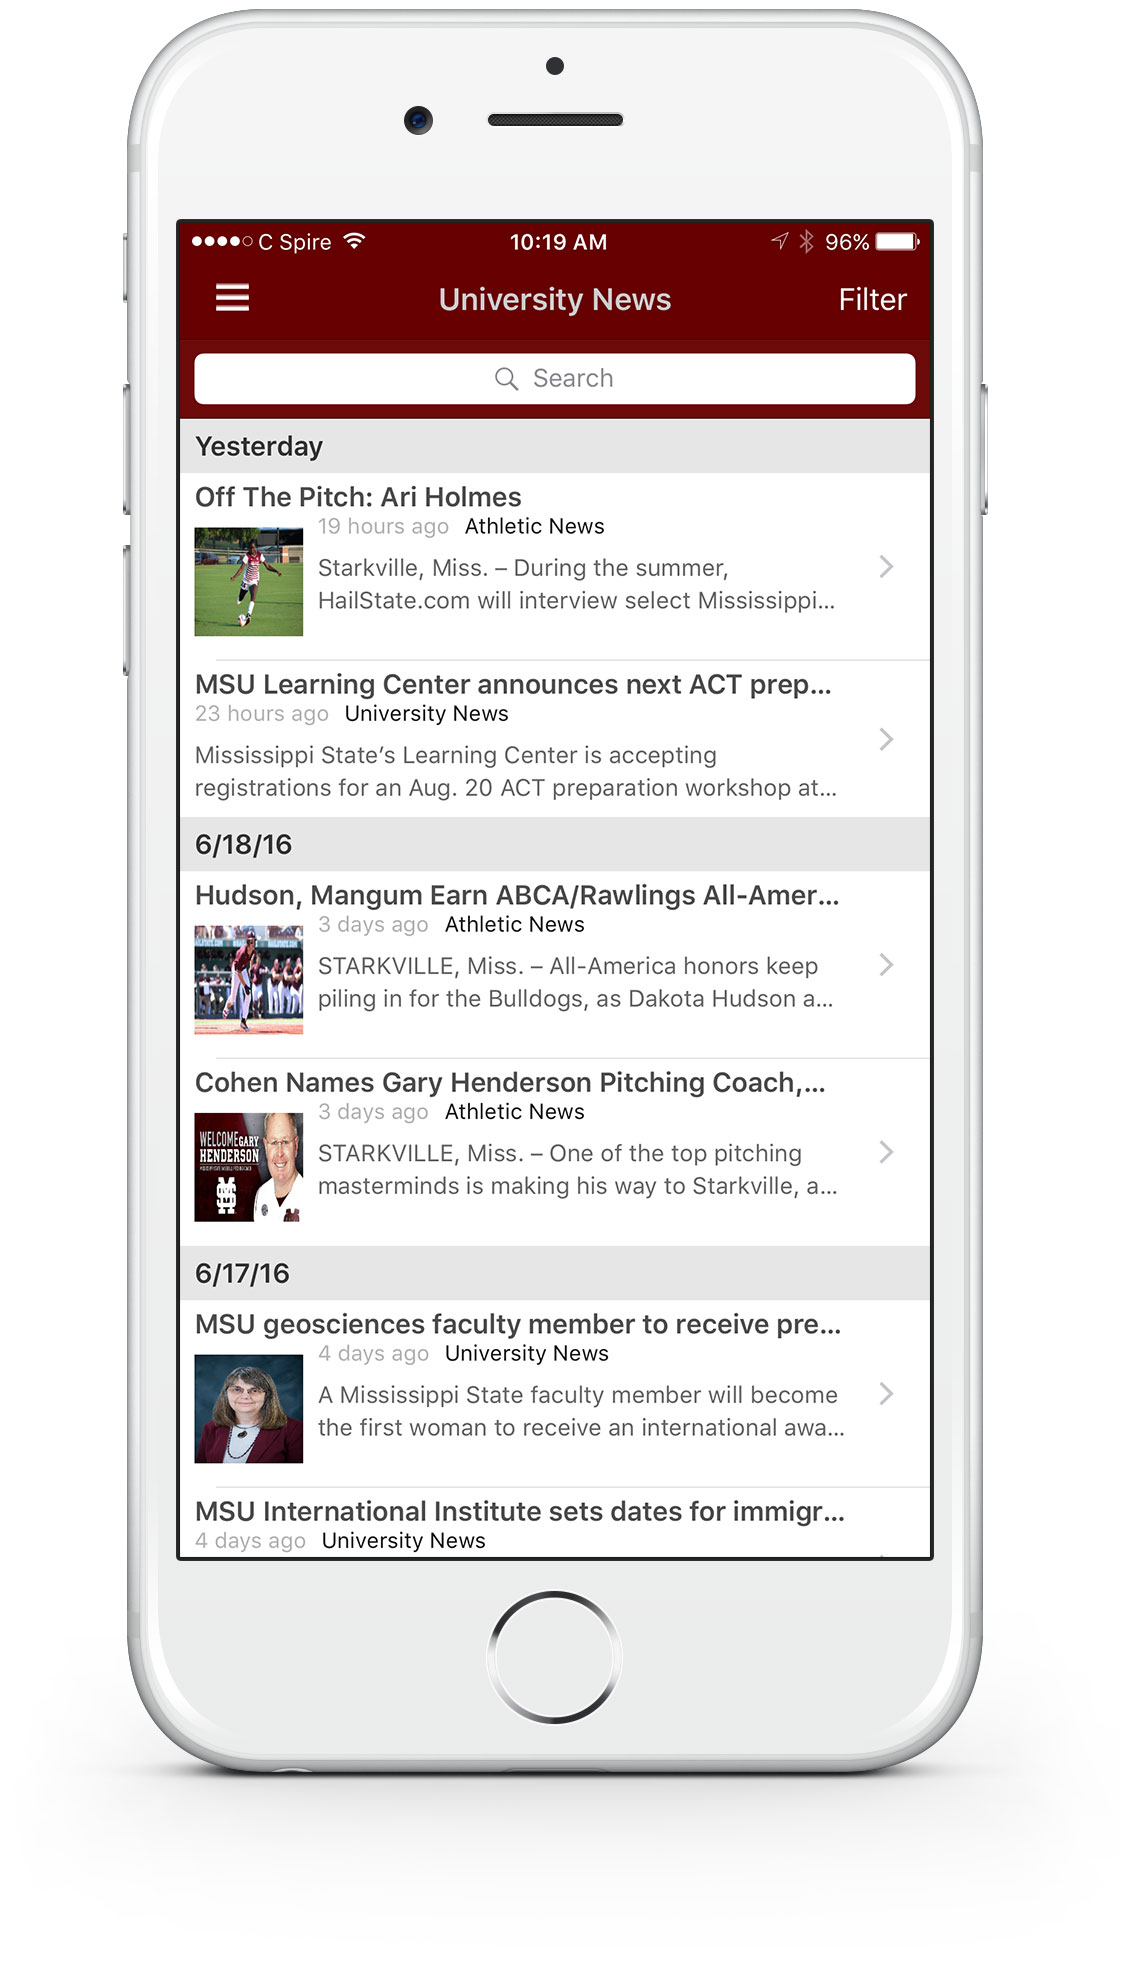 Rendering of myState Mobile app on the University News section within the app.